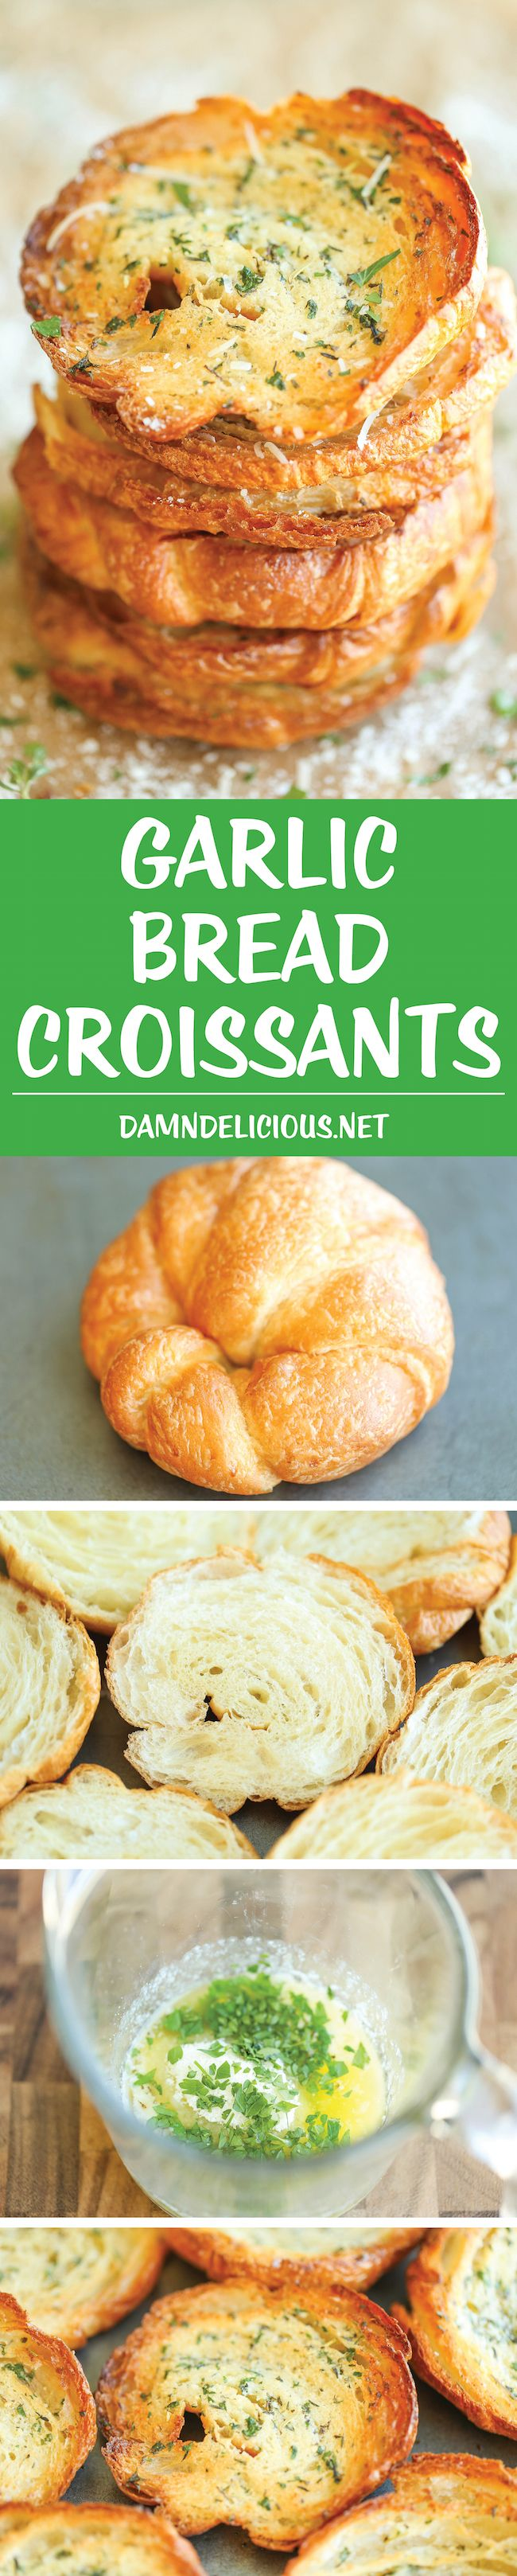 Garlic Bread Croissants - The absolute BEST kind of garlic bread - it's truly irresistible and you won't be able to stop eating this until they're all gone!